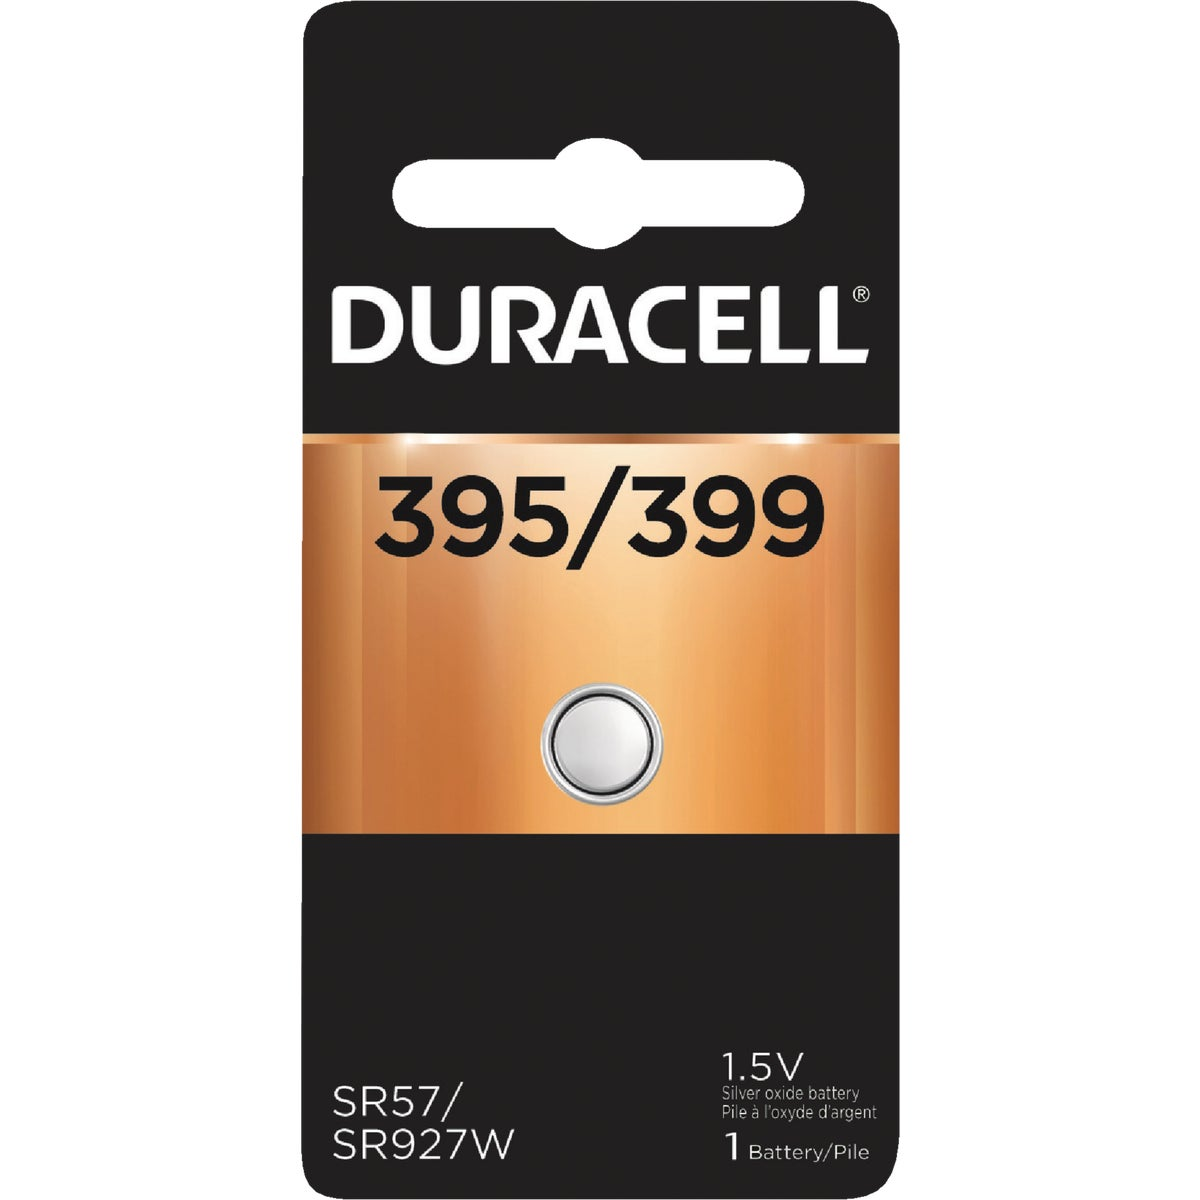 D395/399 1.5V WA BATTERY - 42687 by P & G  Duracell